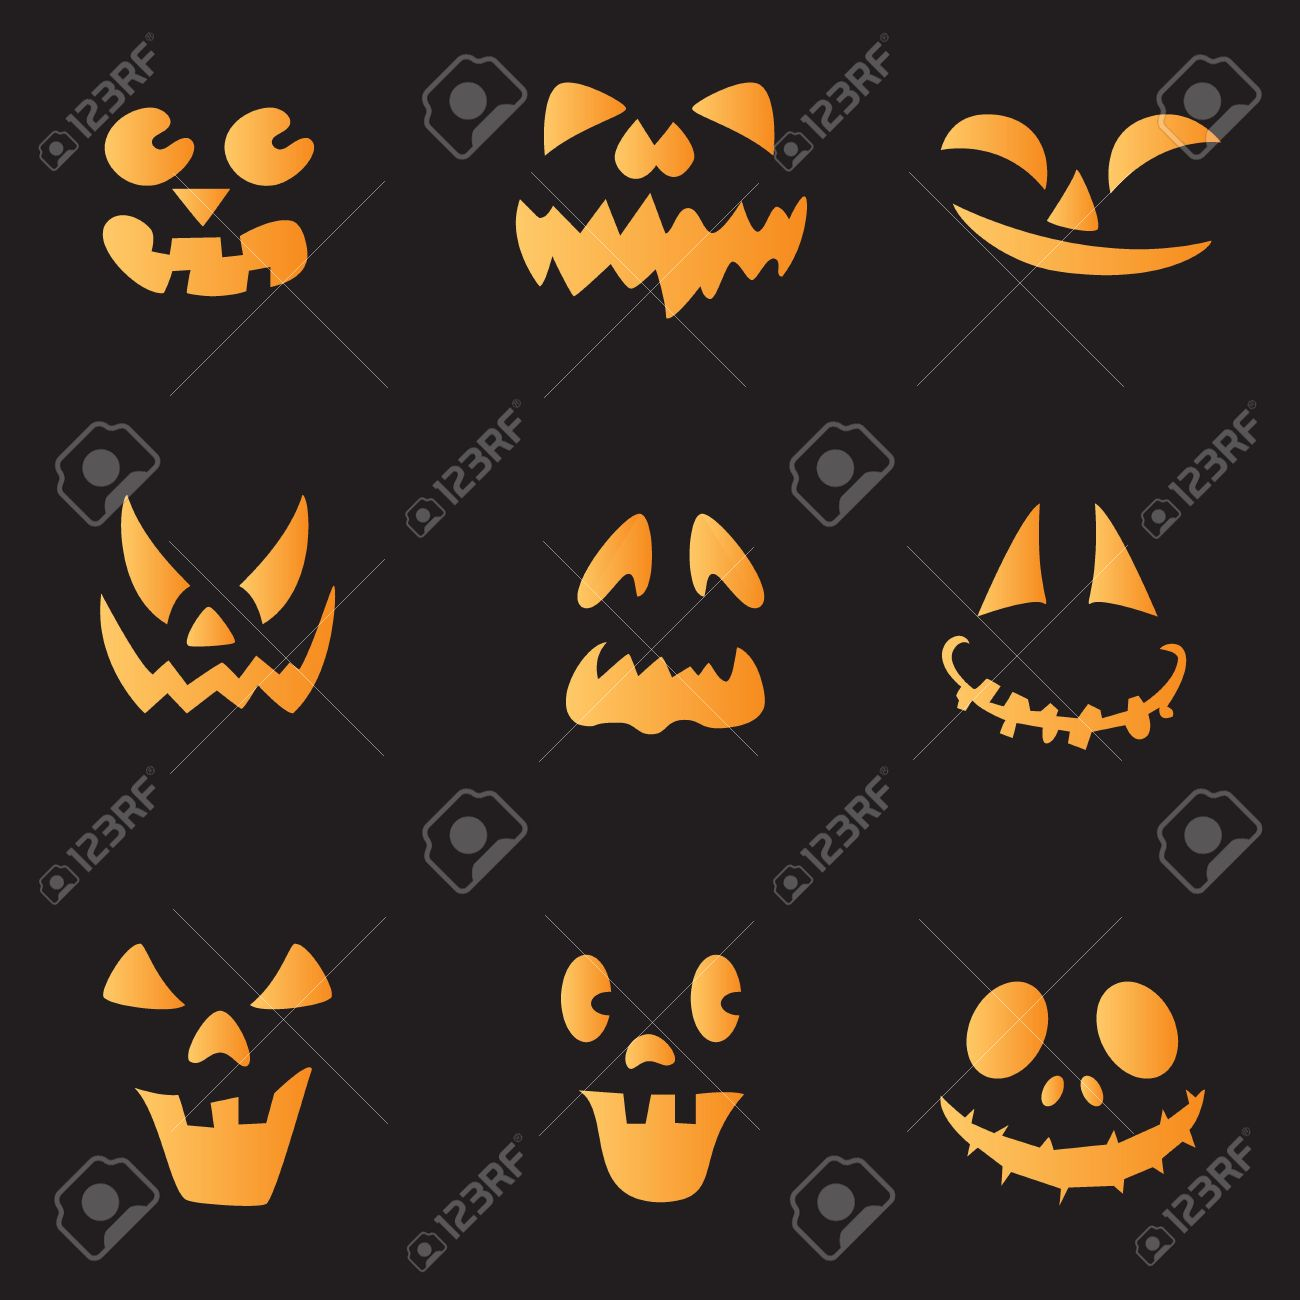 scary faces of halloween pumpkin vector royalty free cliparts rh 123rf com scary pumpkin faces for halloween scary pumpkin faces for halloween